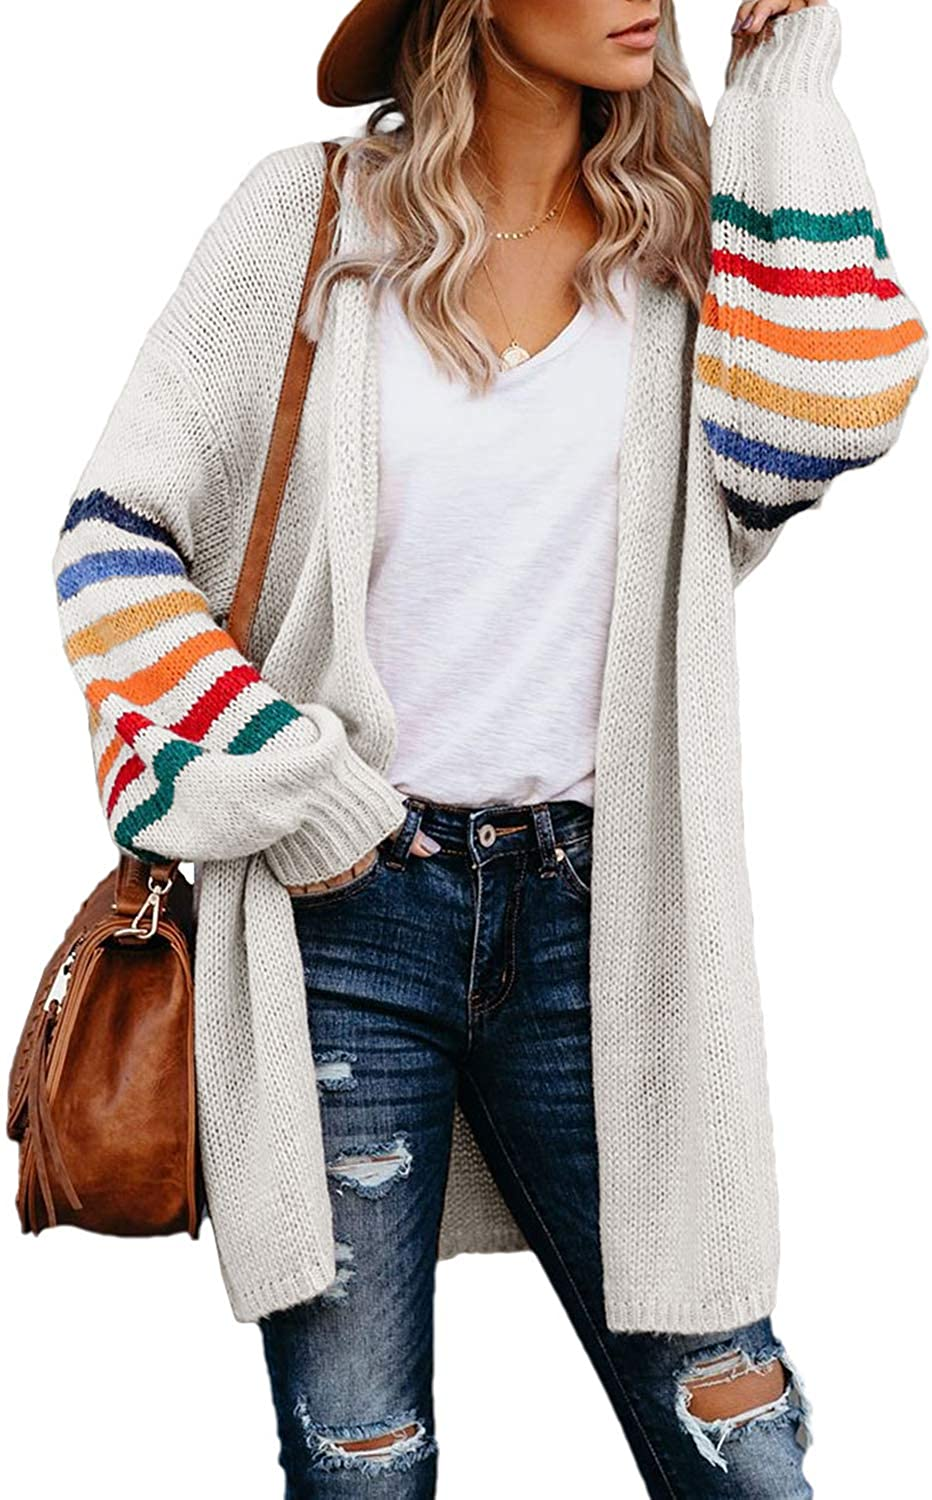 Dokotoo Women's Long Open Front Cardigans Striped Color Block Loose Knit Sweaters Outwear Coat